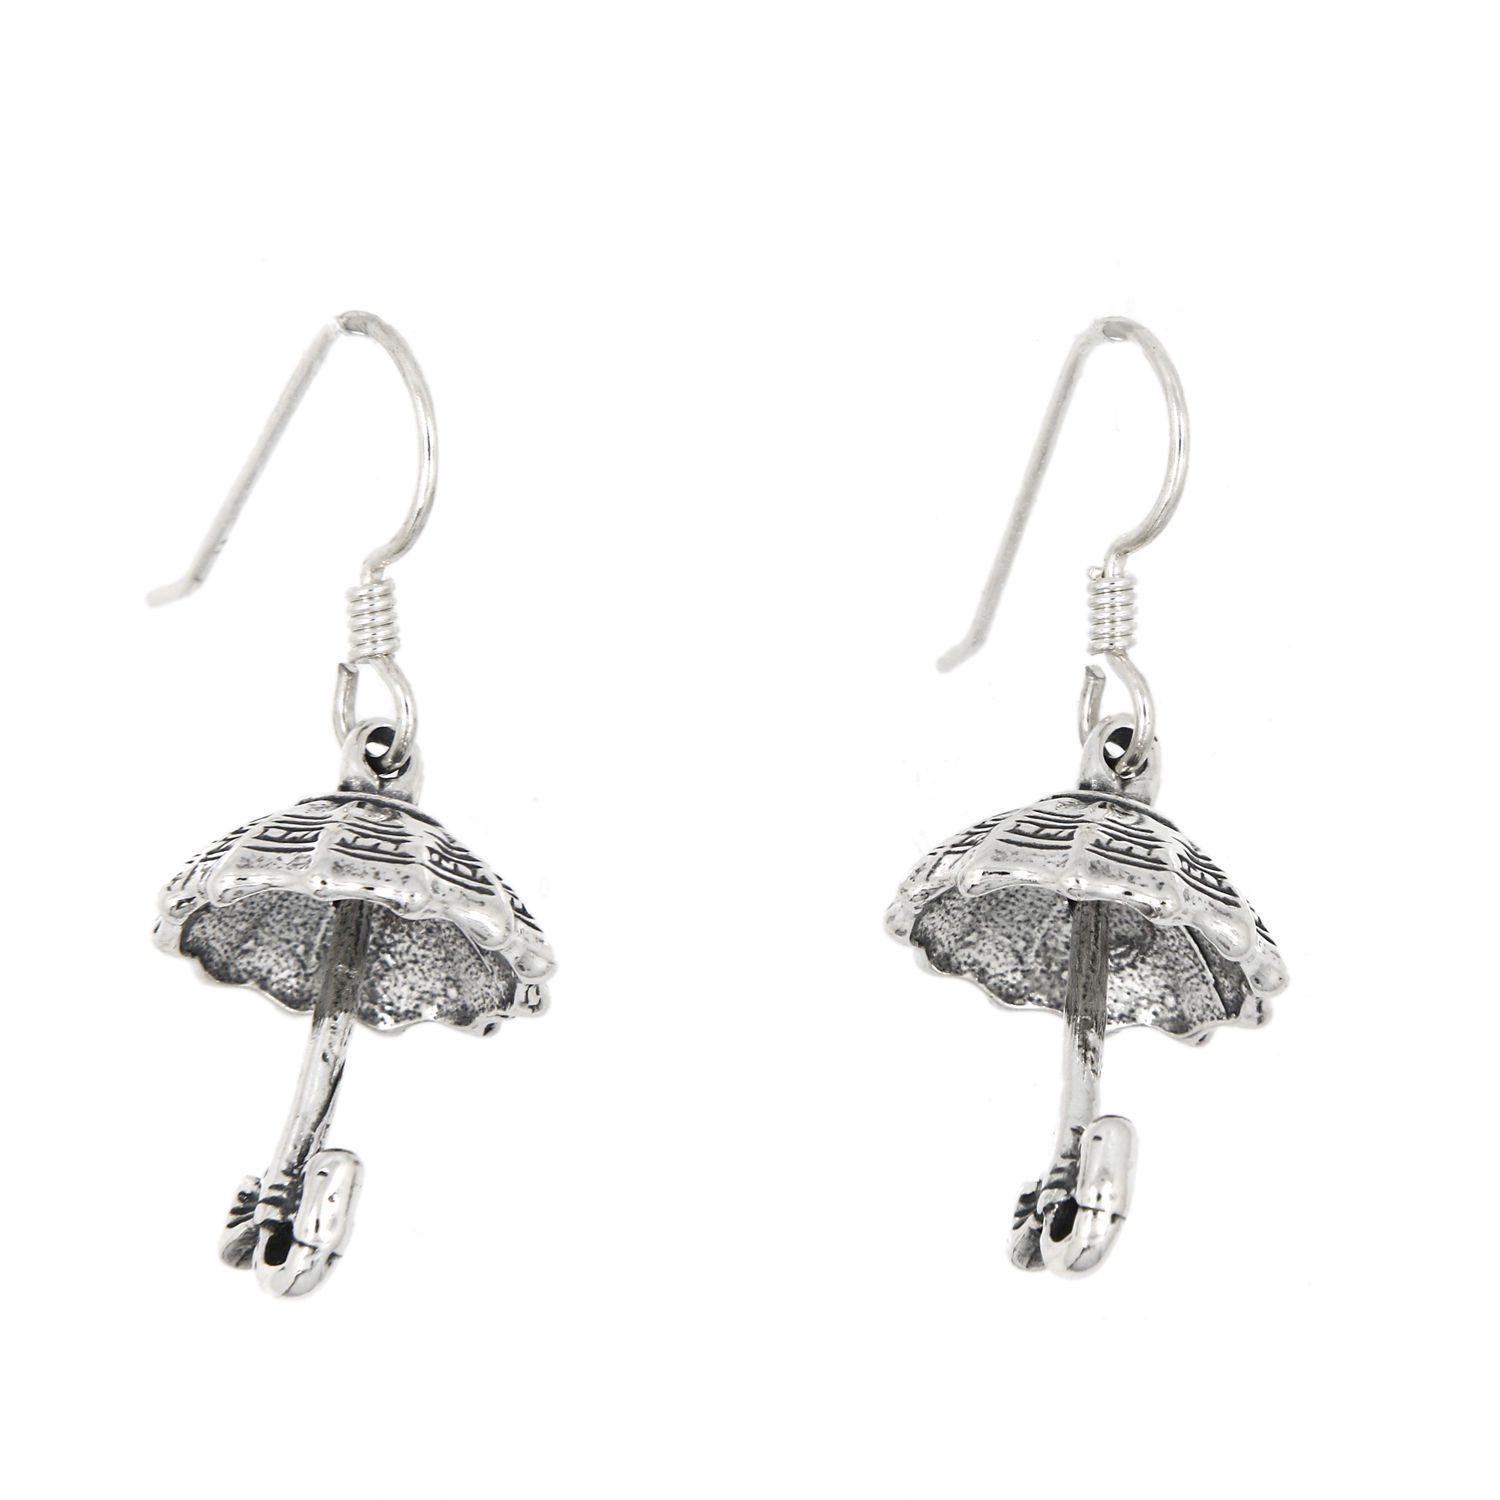 Primary image for STERLING SILVER OPEN UMBRELLA EARRINGS